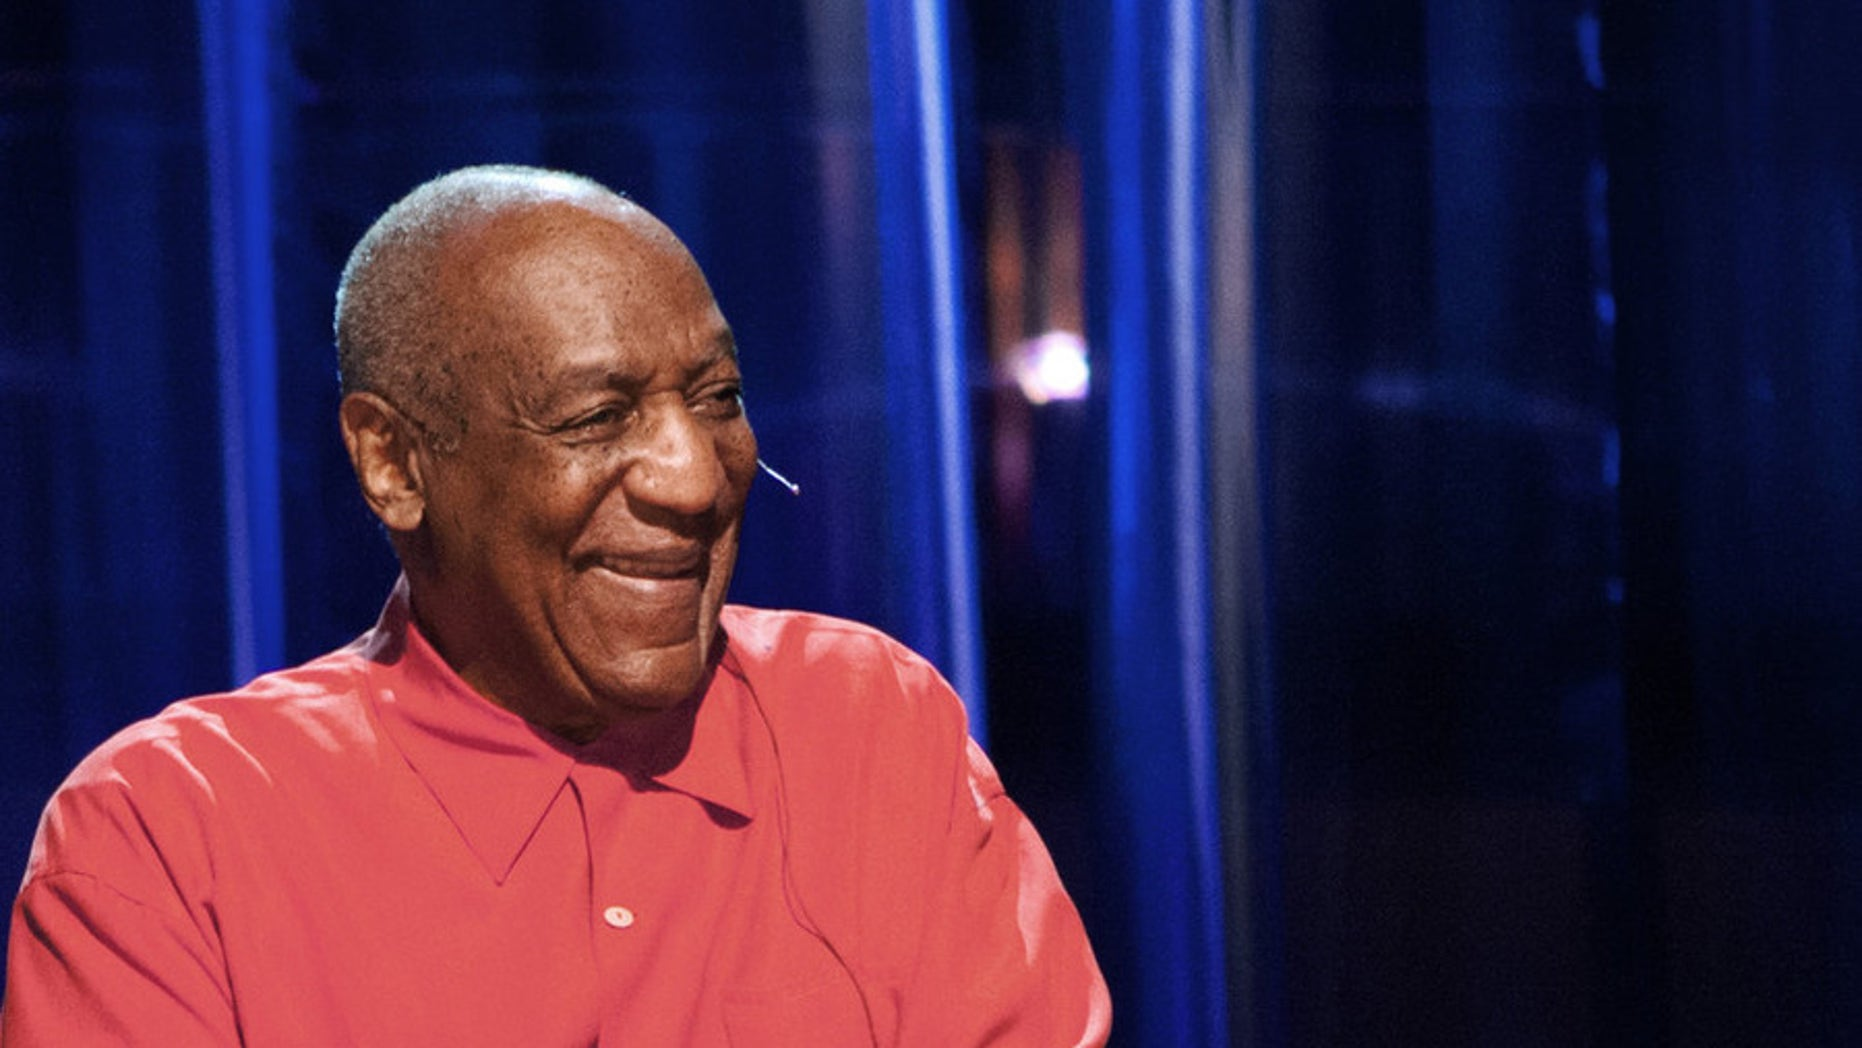 Bill Cosby at the American Comedy Awards.